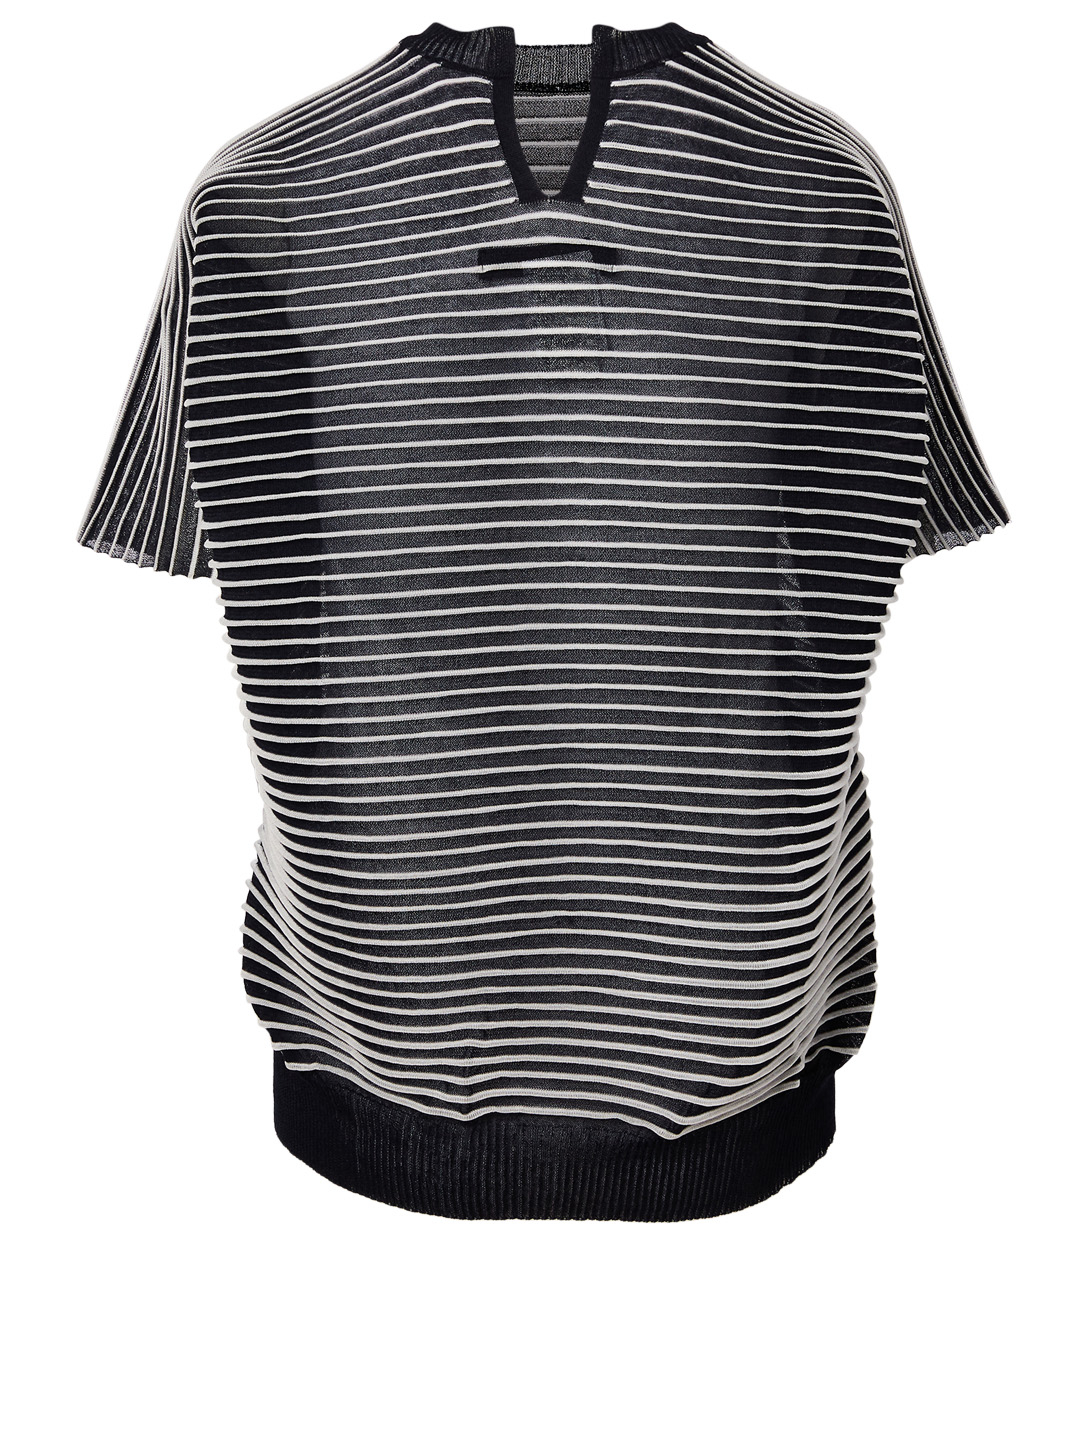 JUNYA WATANABE Short-Sleeve Horizontal Stripe Knit Sweater Women's Blue